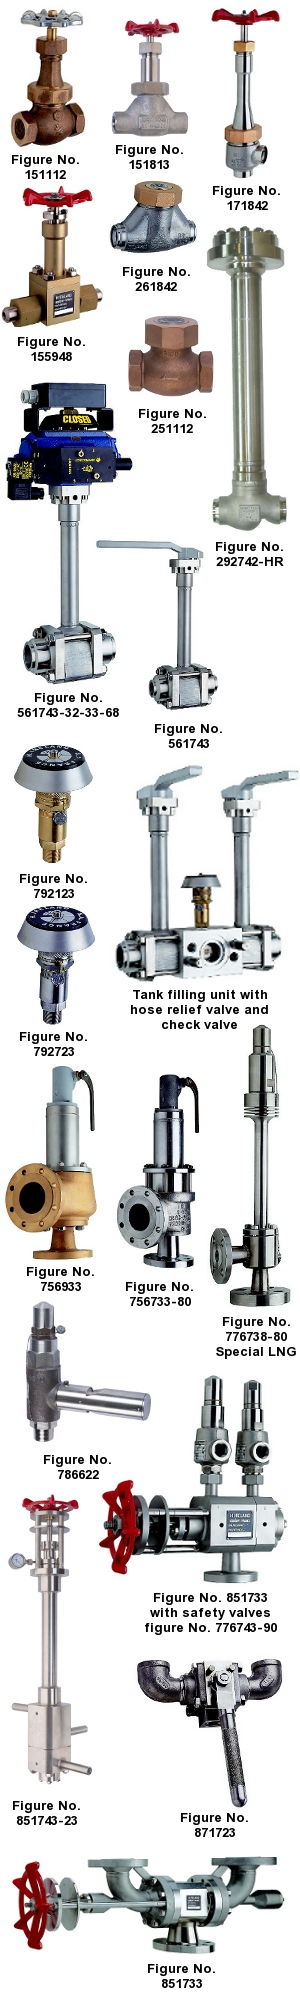 Engineered valves | Codification